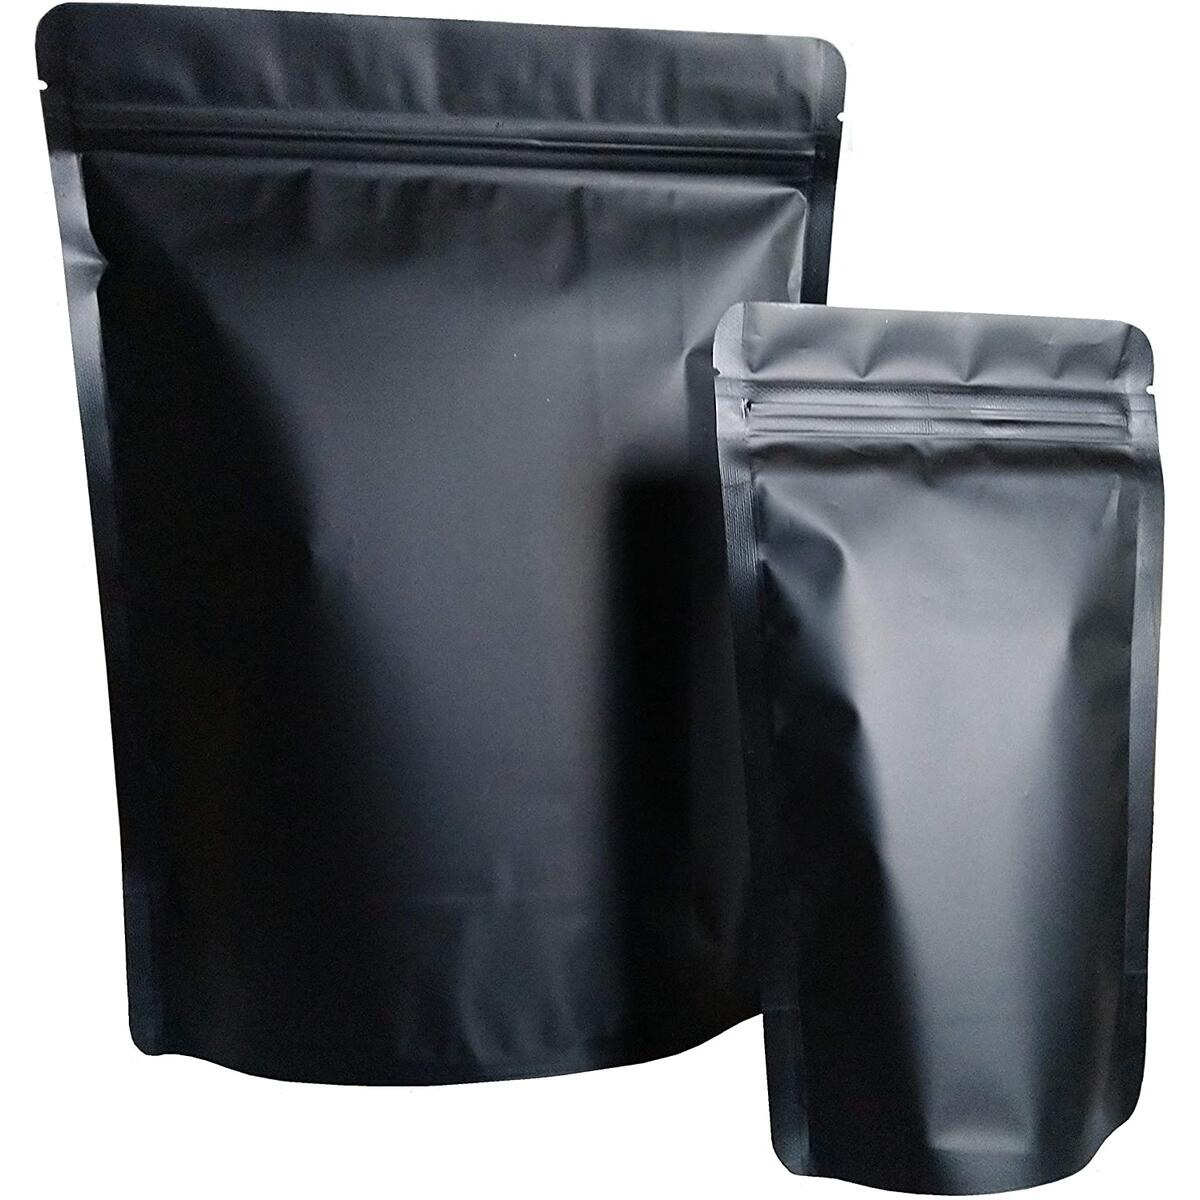 55 Pack Smell Proof Bags Mylar Bags Ziplock Stand Up 50 Pack 19.5 fl.oz (5.5X8 Inch) Plus 5 Pack 3.8 Quarts (9X13 Inch) Resealable Matte Black Airtight Zipper Pouch